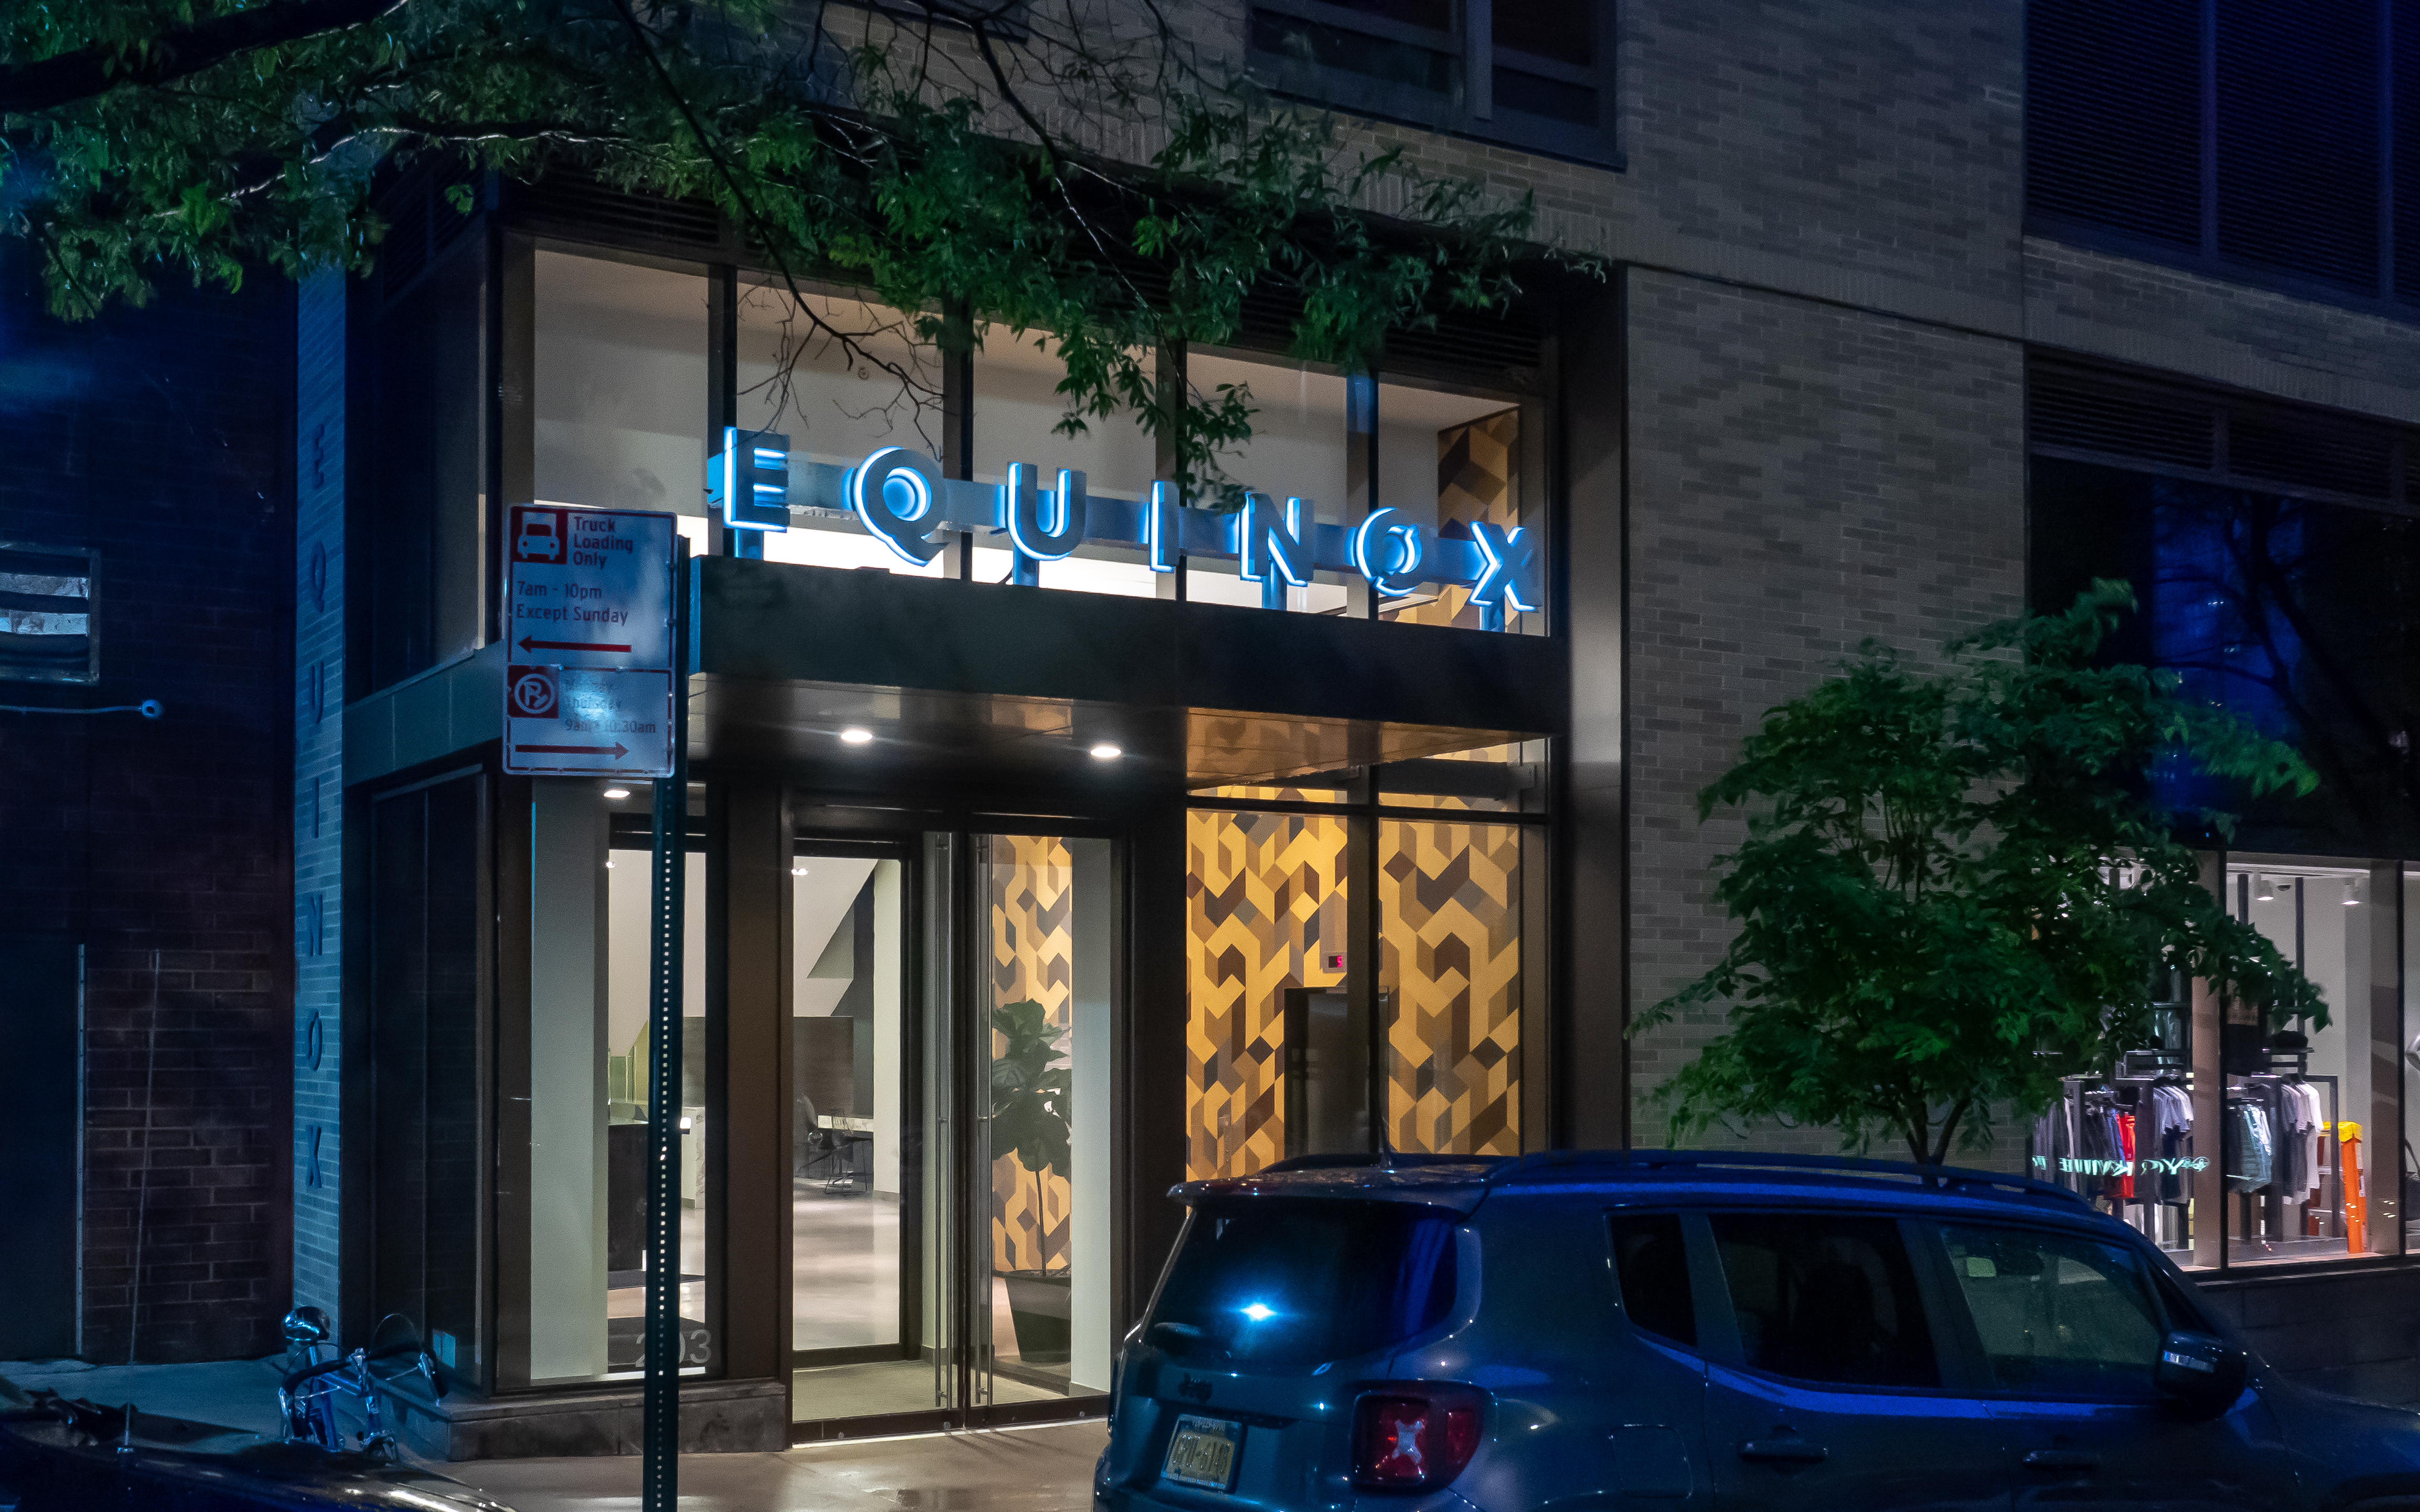 Equinox Fitness - Wikipedia